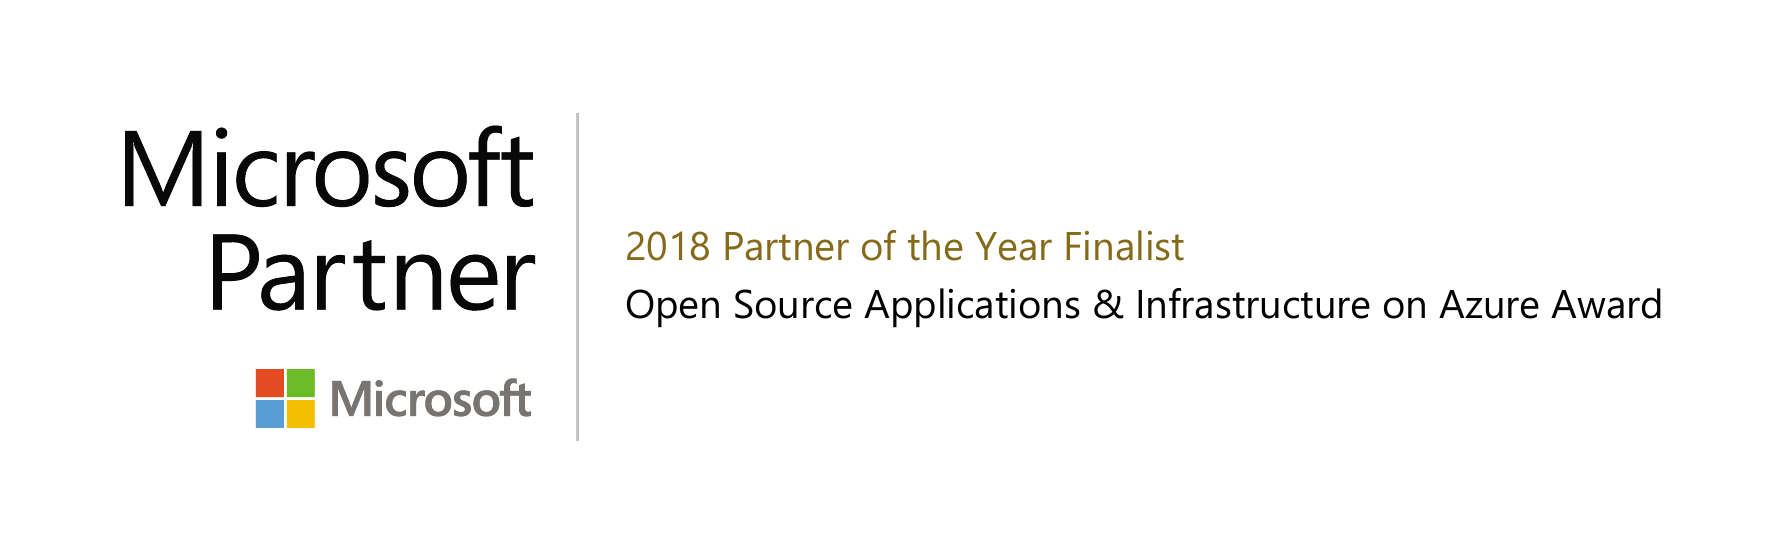 SNP Technologies recognized as a finalist for  Microsoft 2018 Partner of the Year Awards for Open Source Applications & Infrastructure on Azure Award